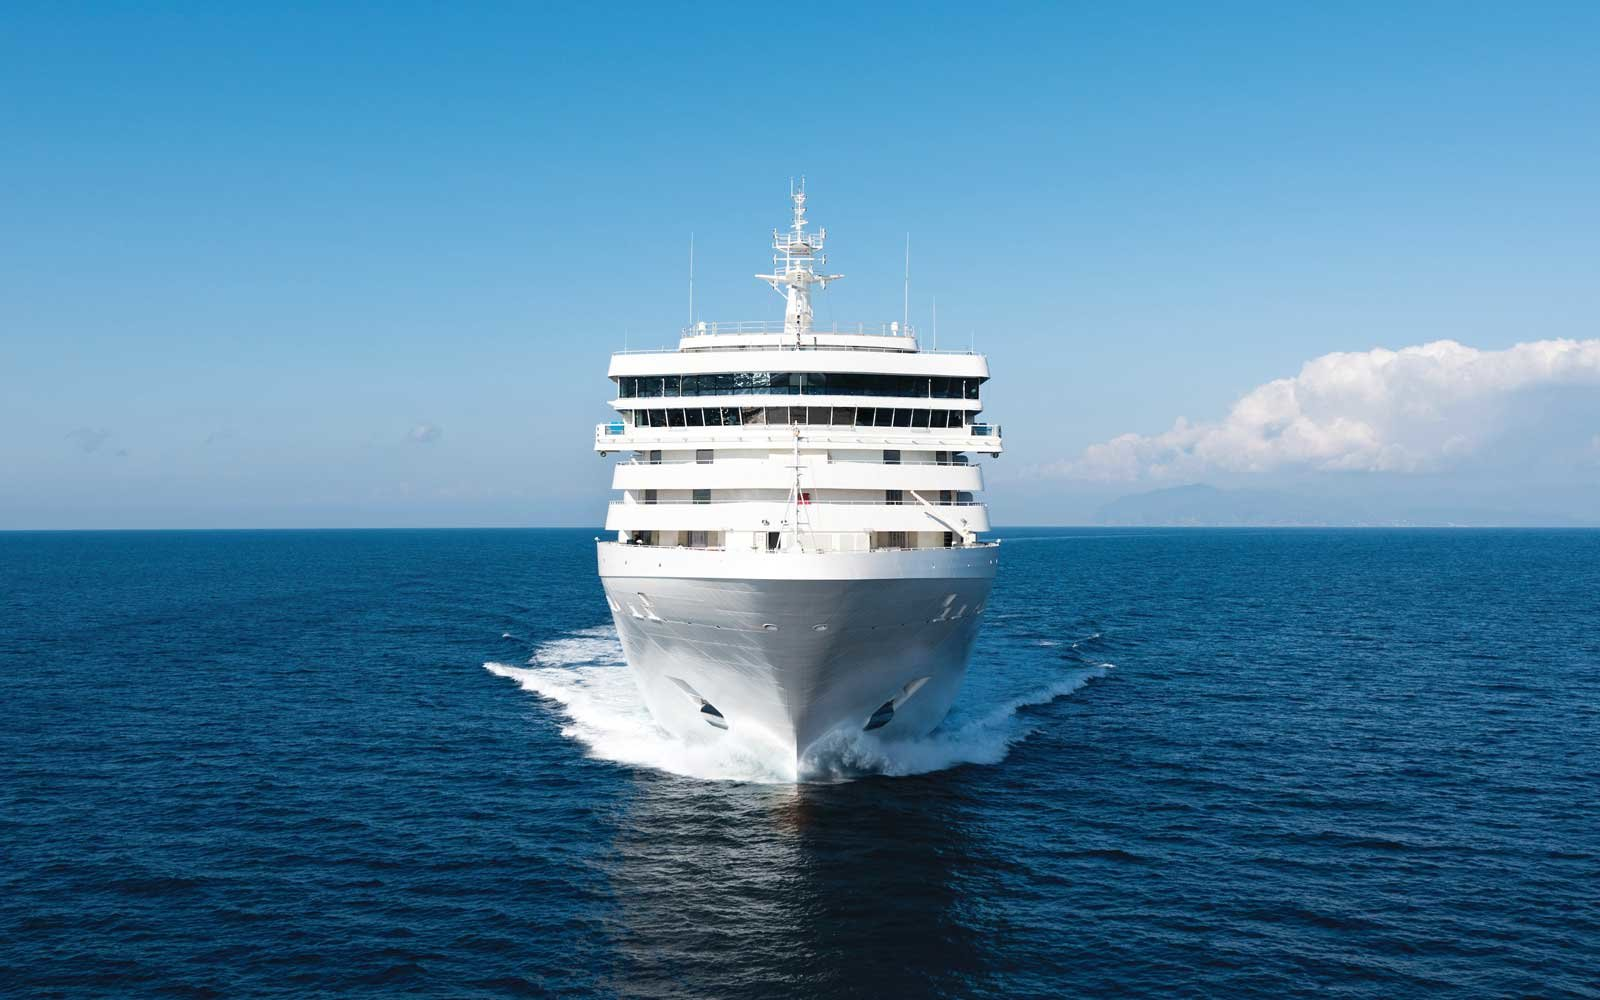 Make Your Holiday Exciting With Corryvreckan Cruising